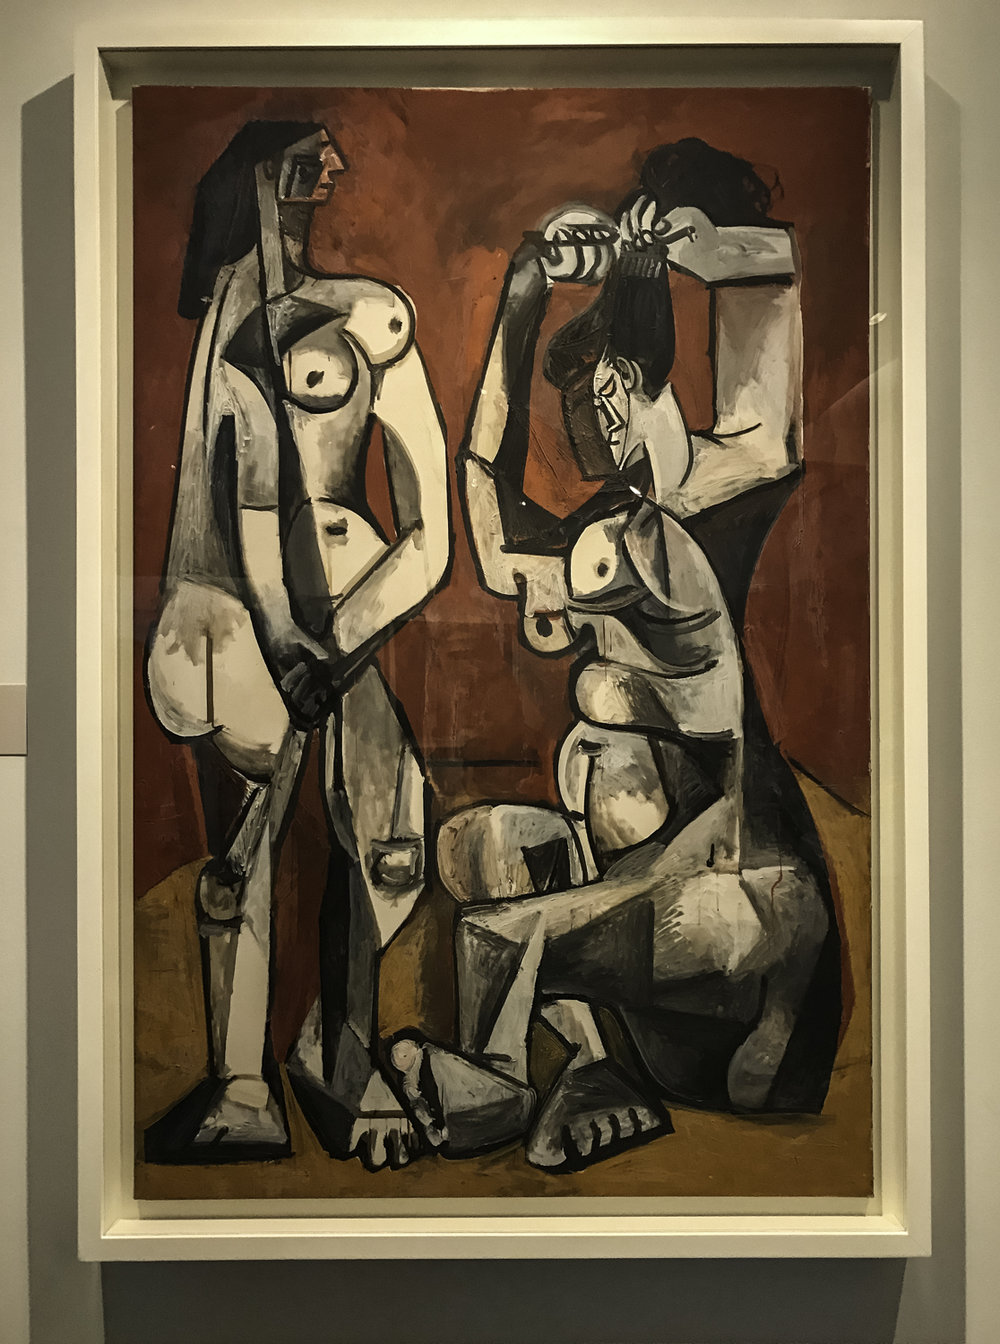 La Toilette,   oil on canvas, 1956.